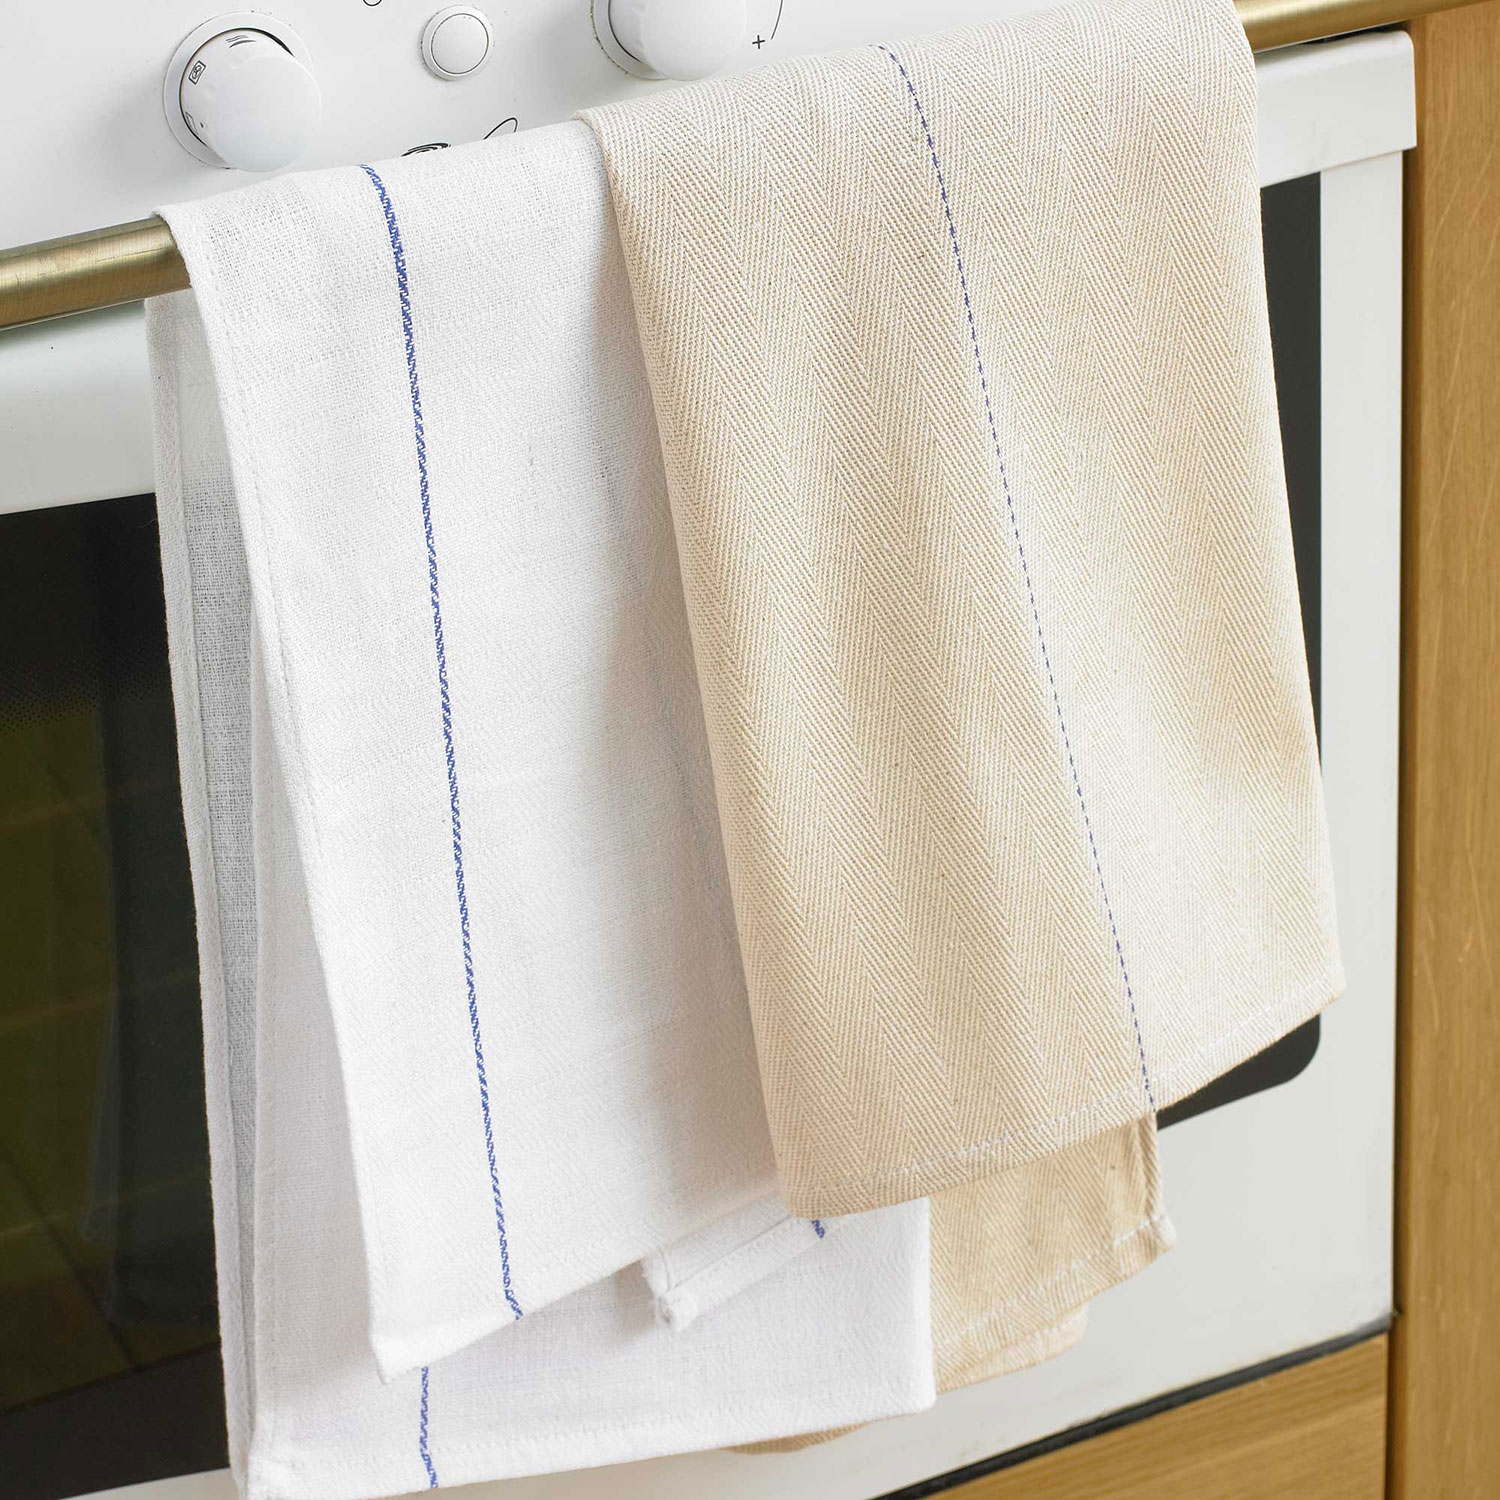 Oven-waiters-cloth-hanging_3.jpg